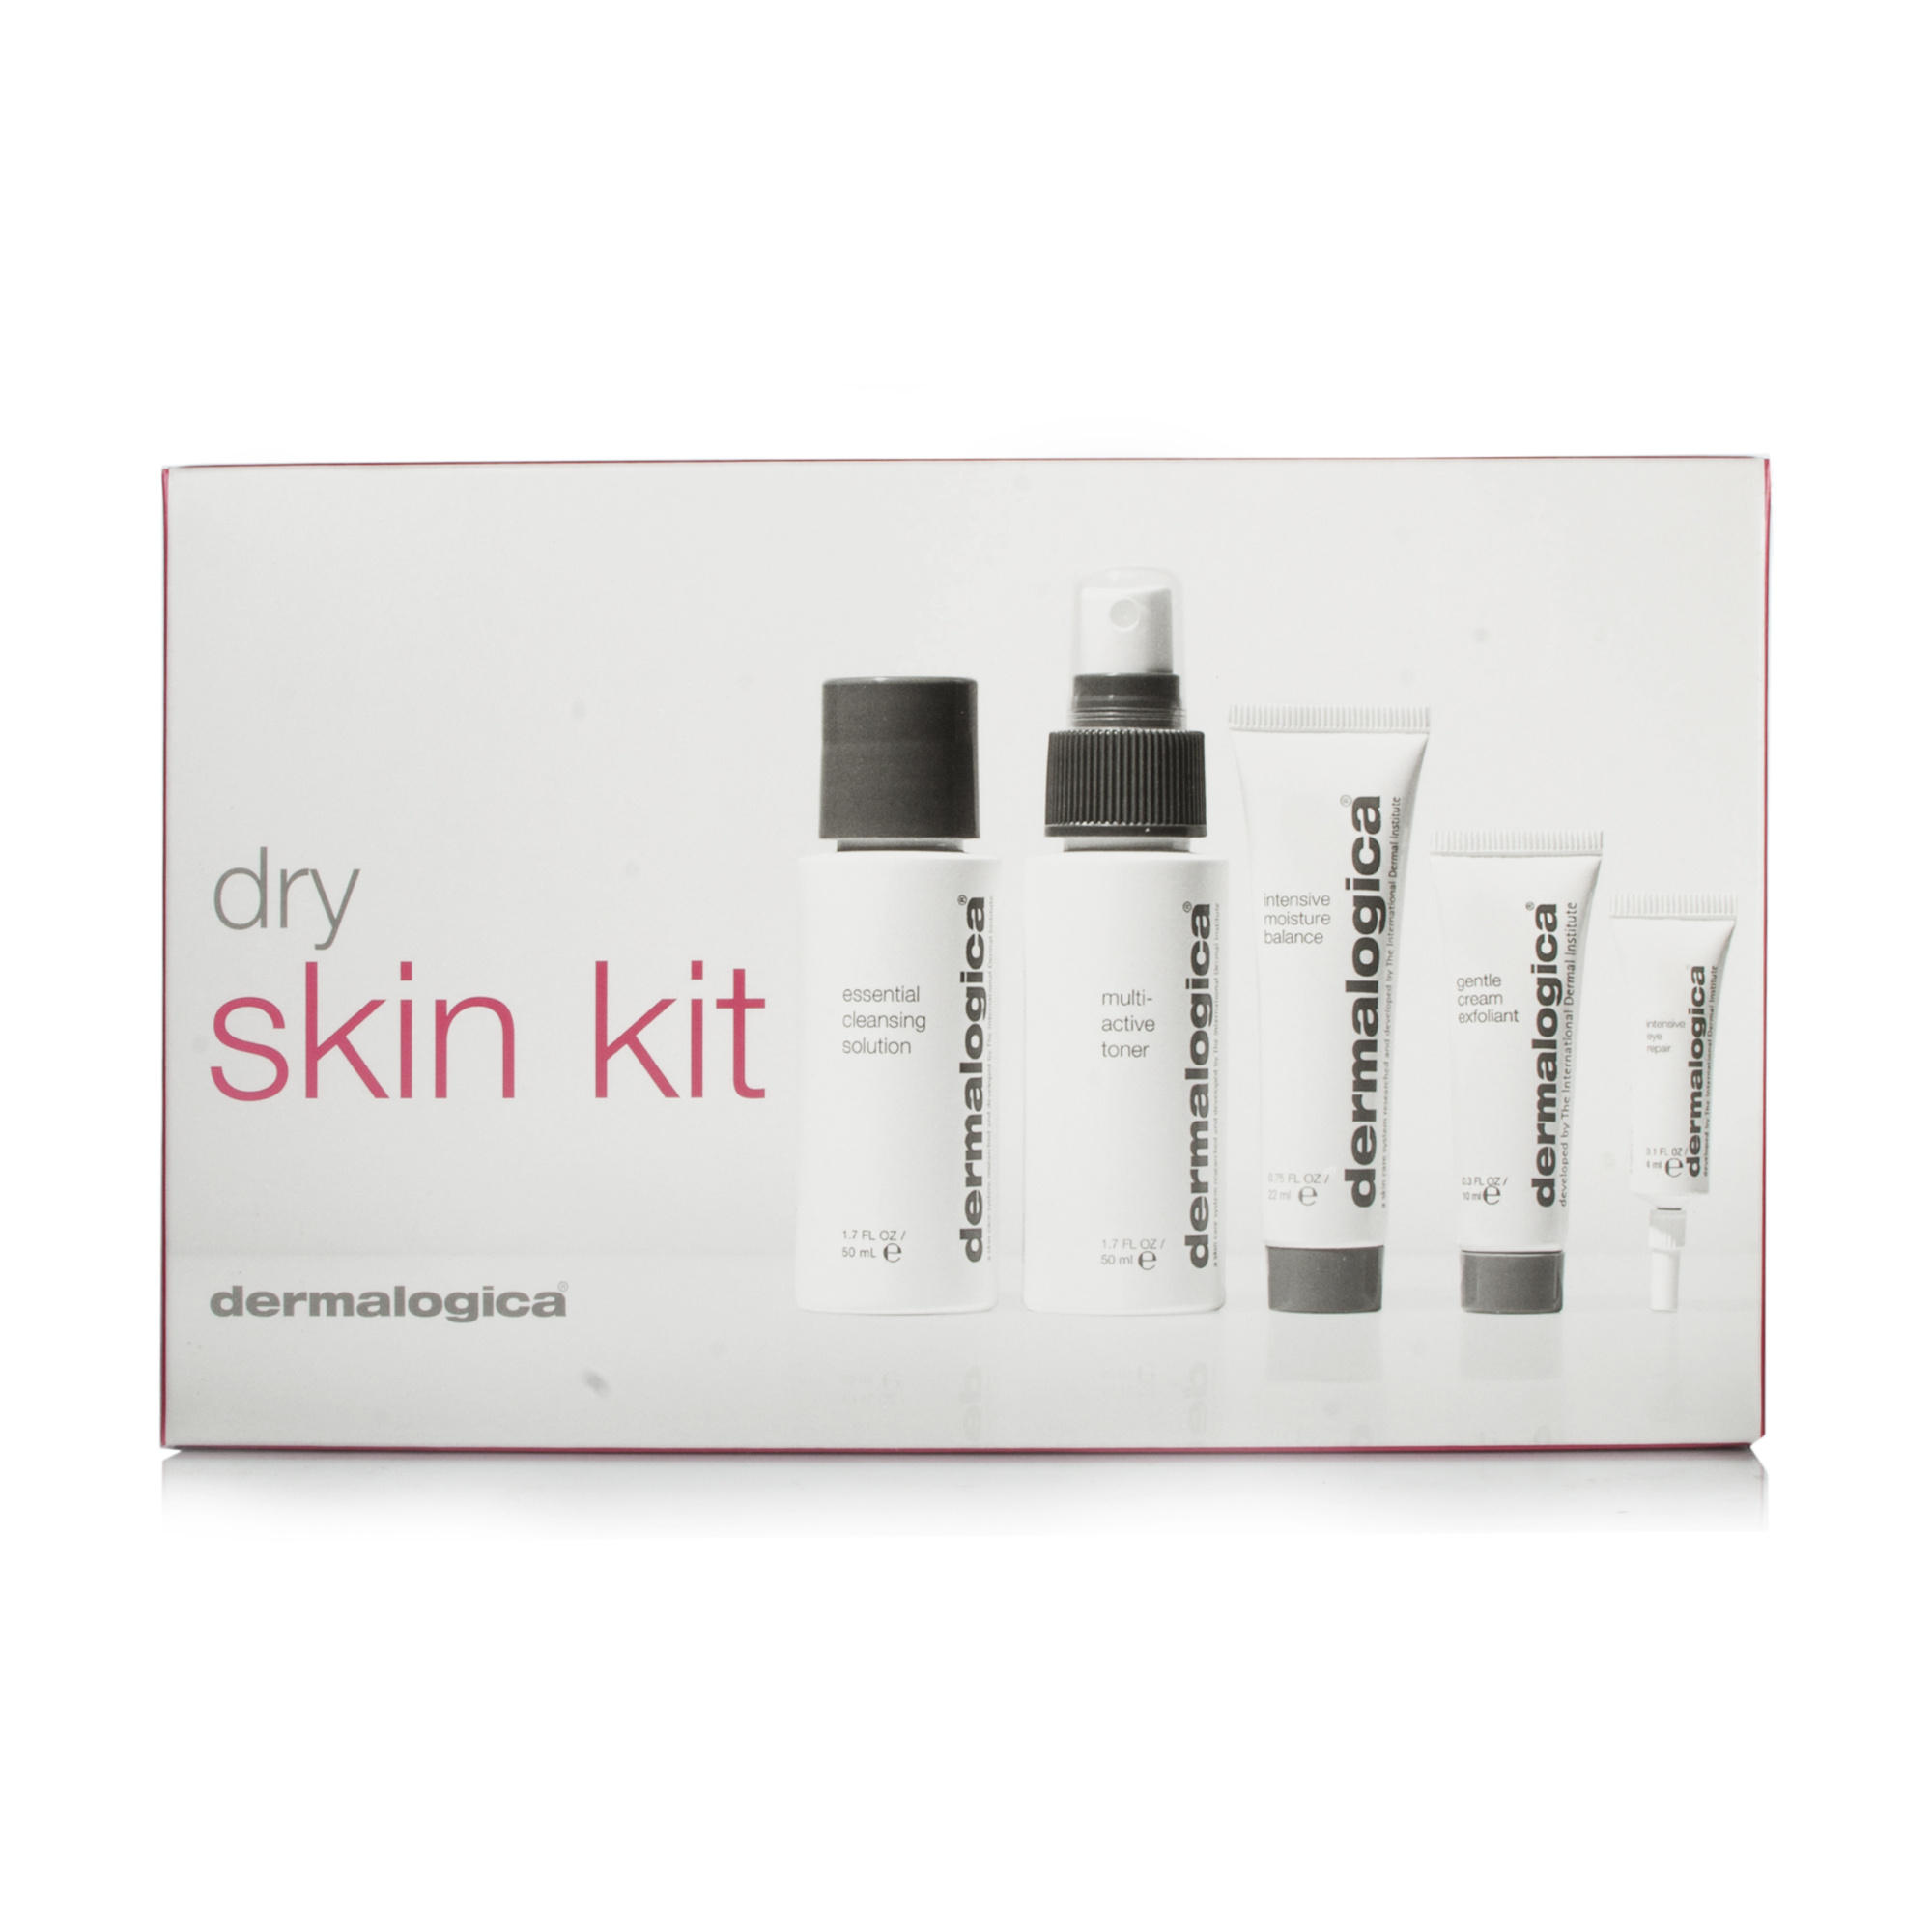 how to use dermalogica dry skin kit